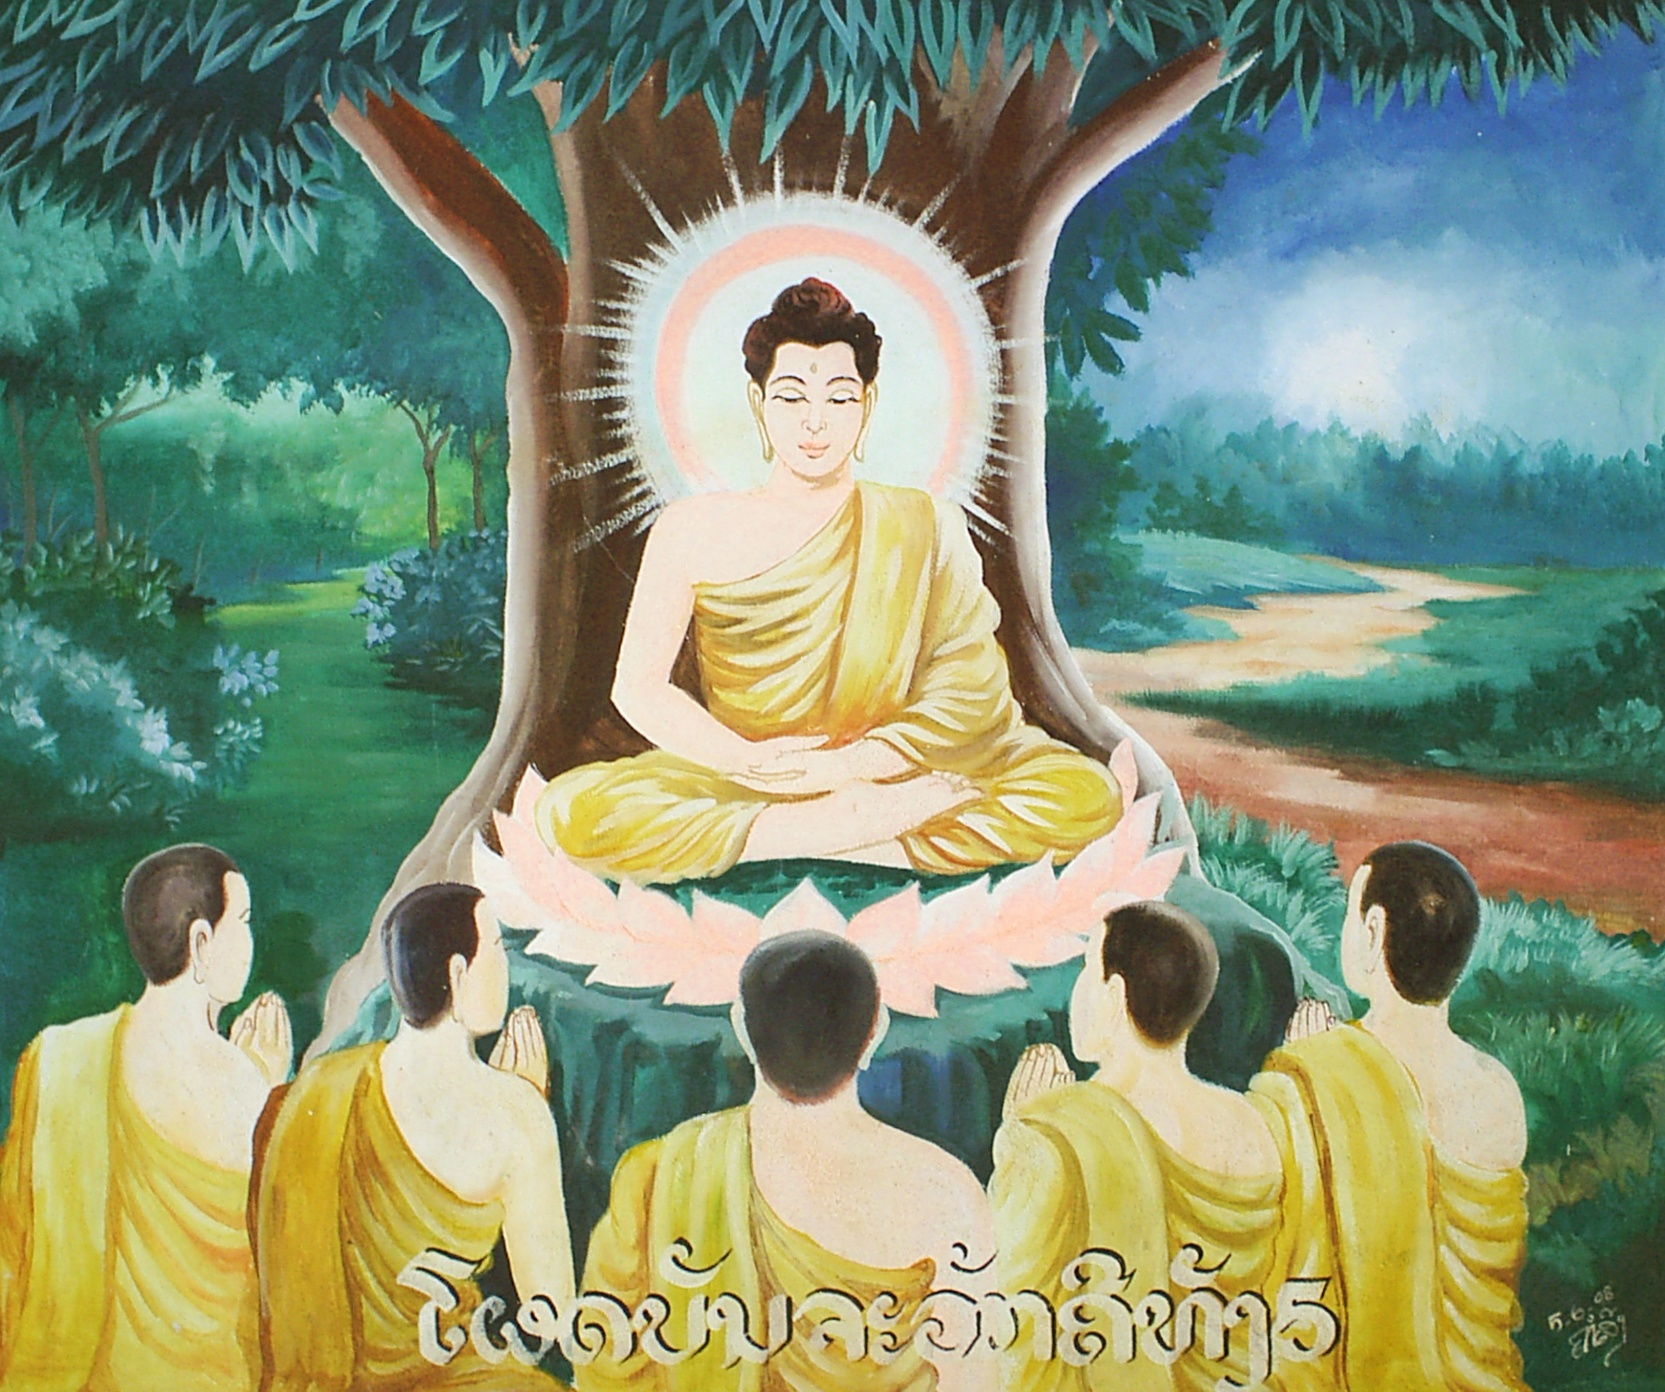 The Teachings Of Buddha - Lawteched